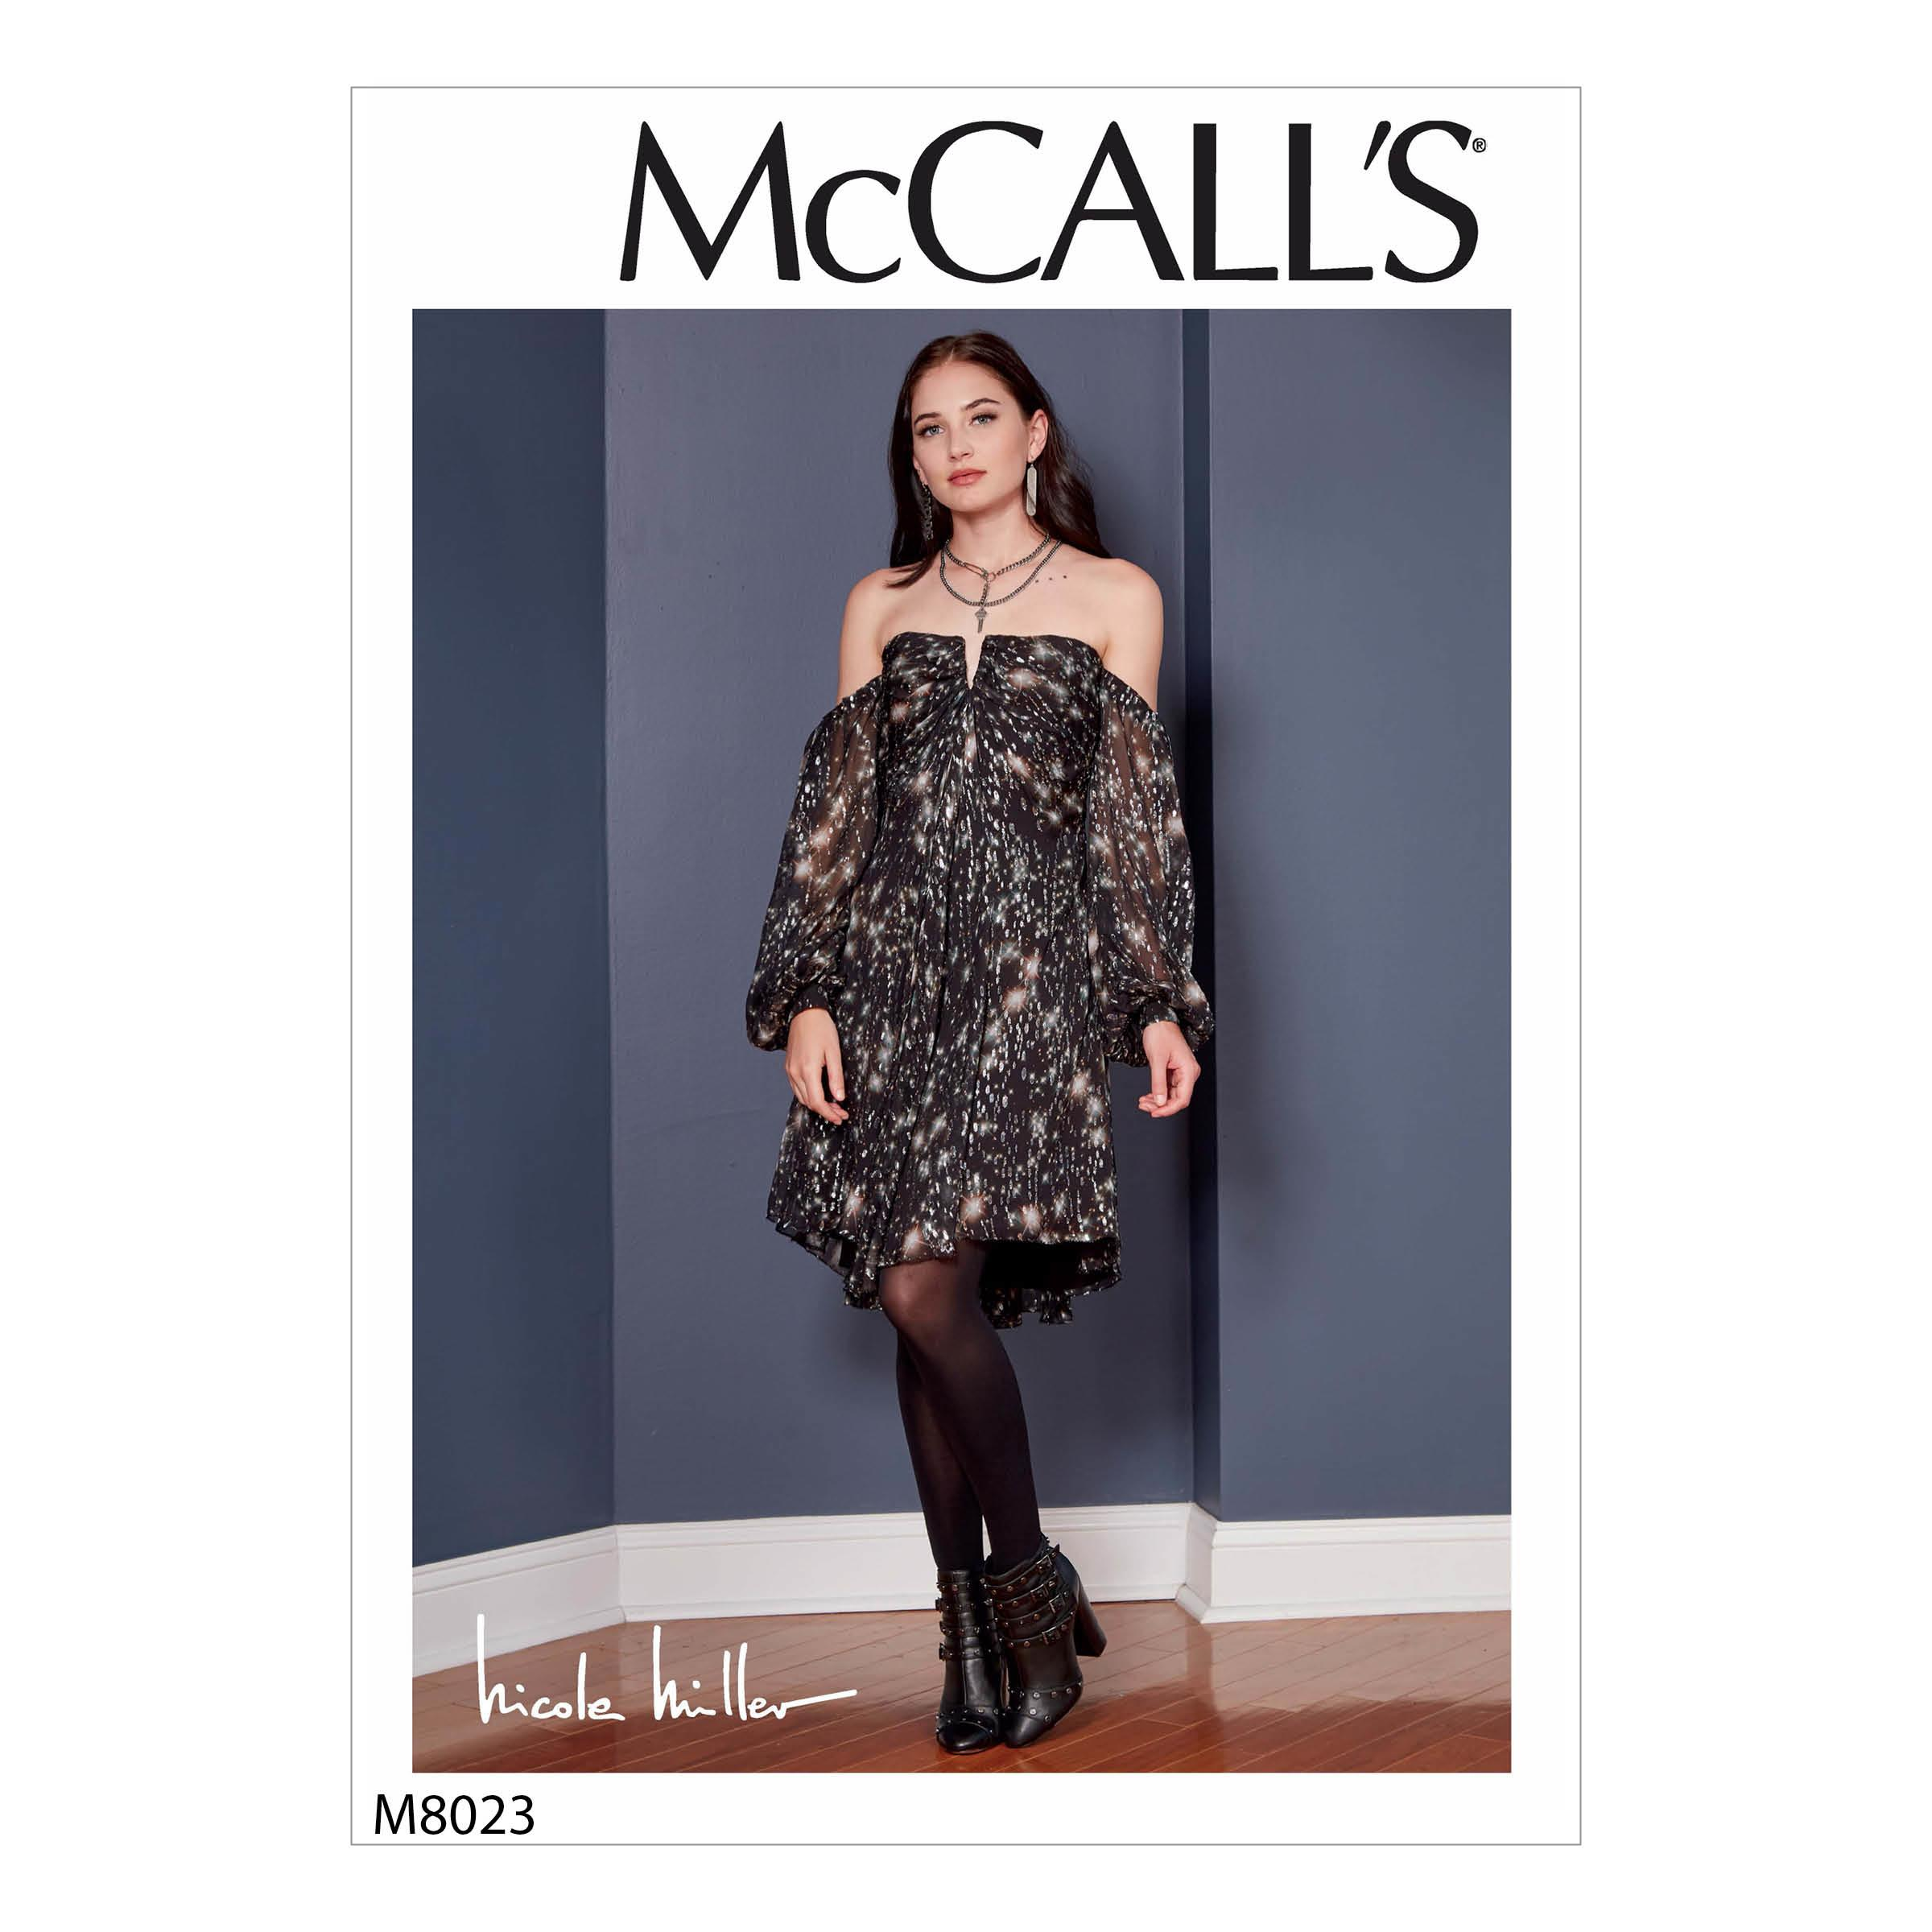 McCalls M8023 Misses Dresses, Misses Prom, Evening & Bridal